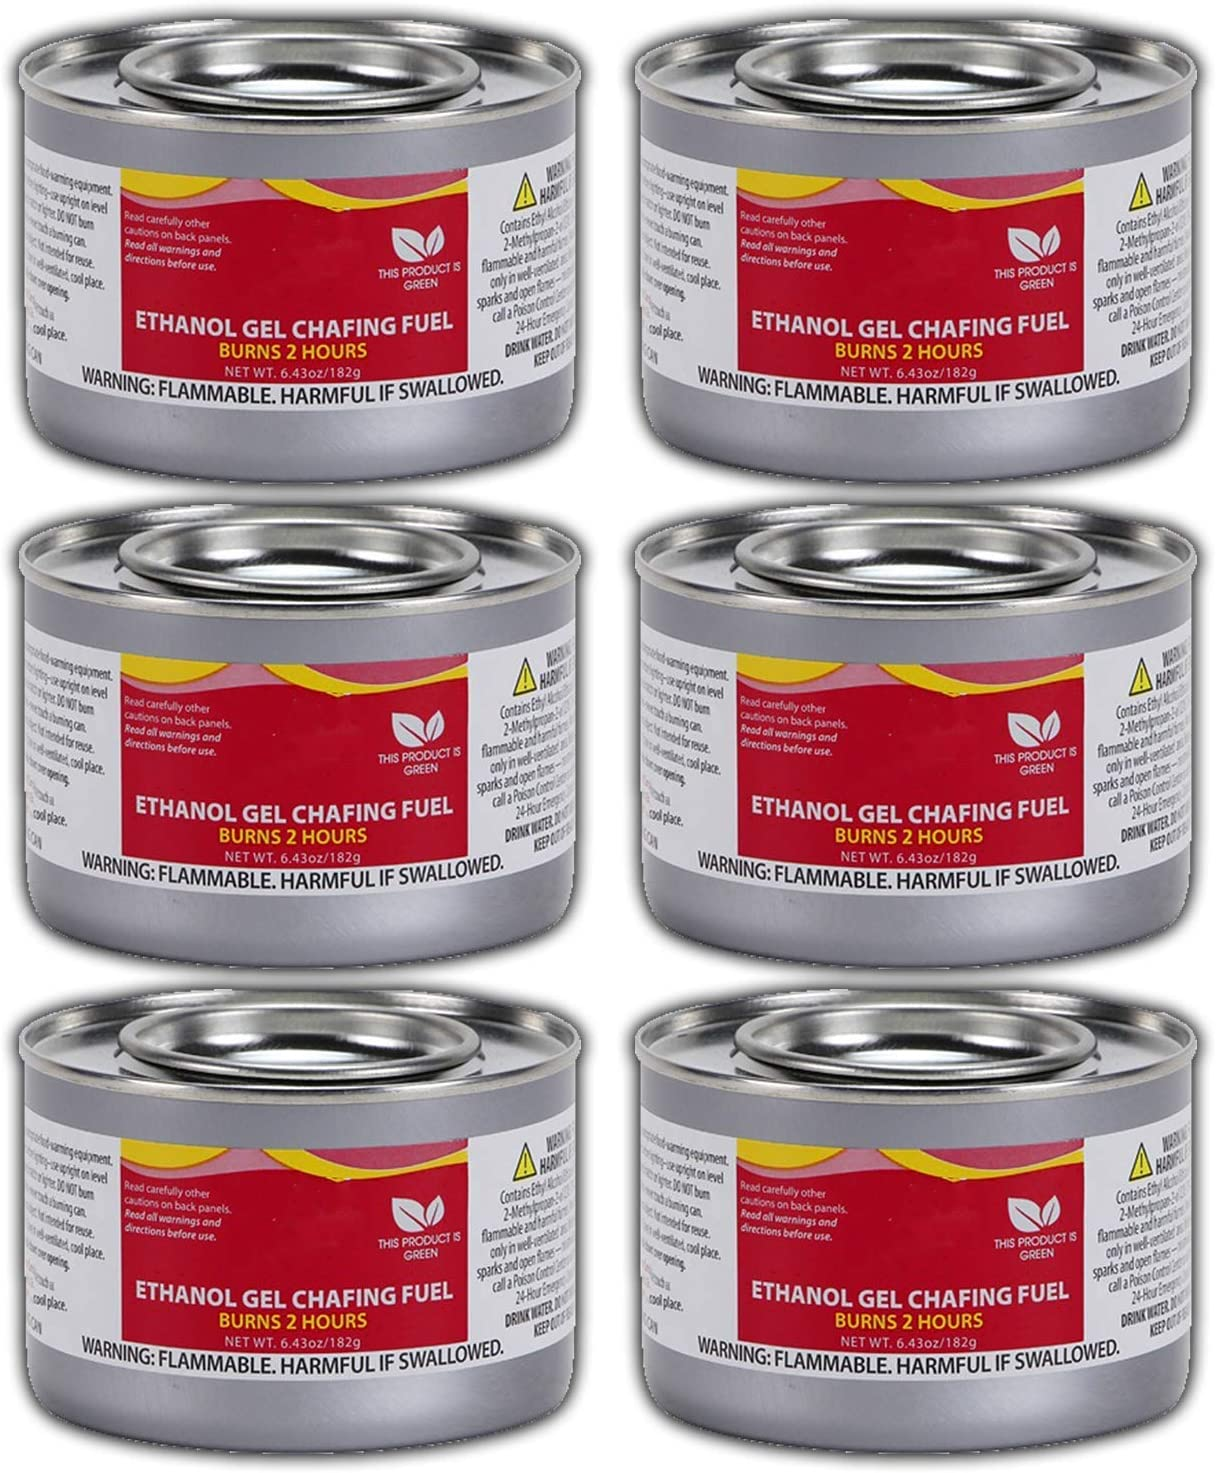 Chafing Dish Fuel Cans – Includes 6 Ethanol Gel Chafing Fuels, Burns for 2.5 Hours (6.43 OZ) for your Cooking, Food Warming, Buffet and Parties.